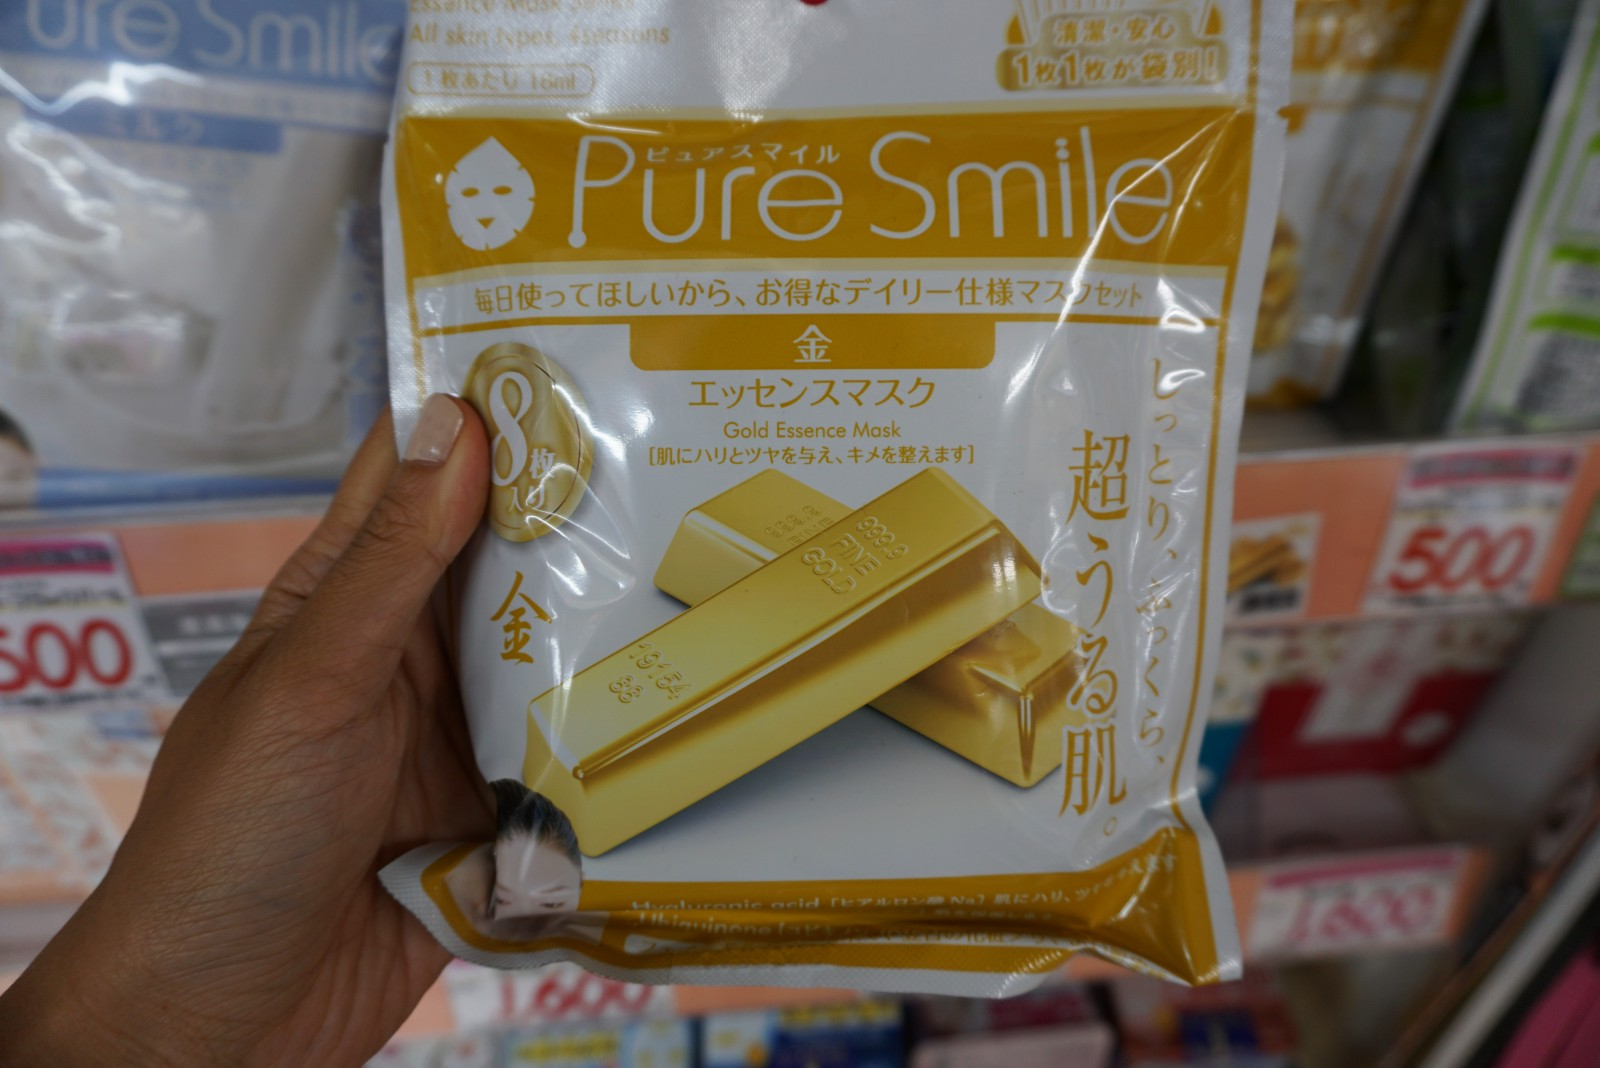 Pure Smile Facial Sheet Mask series